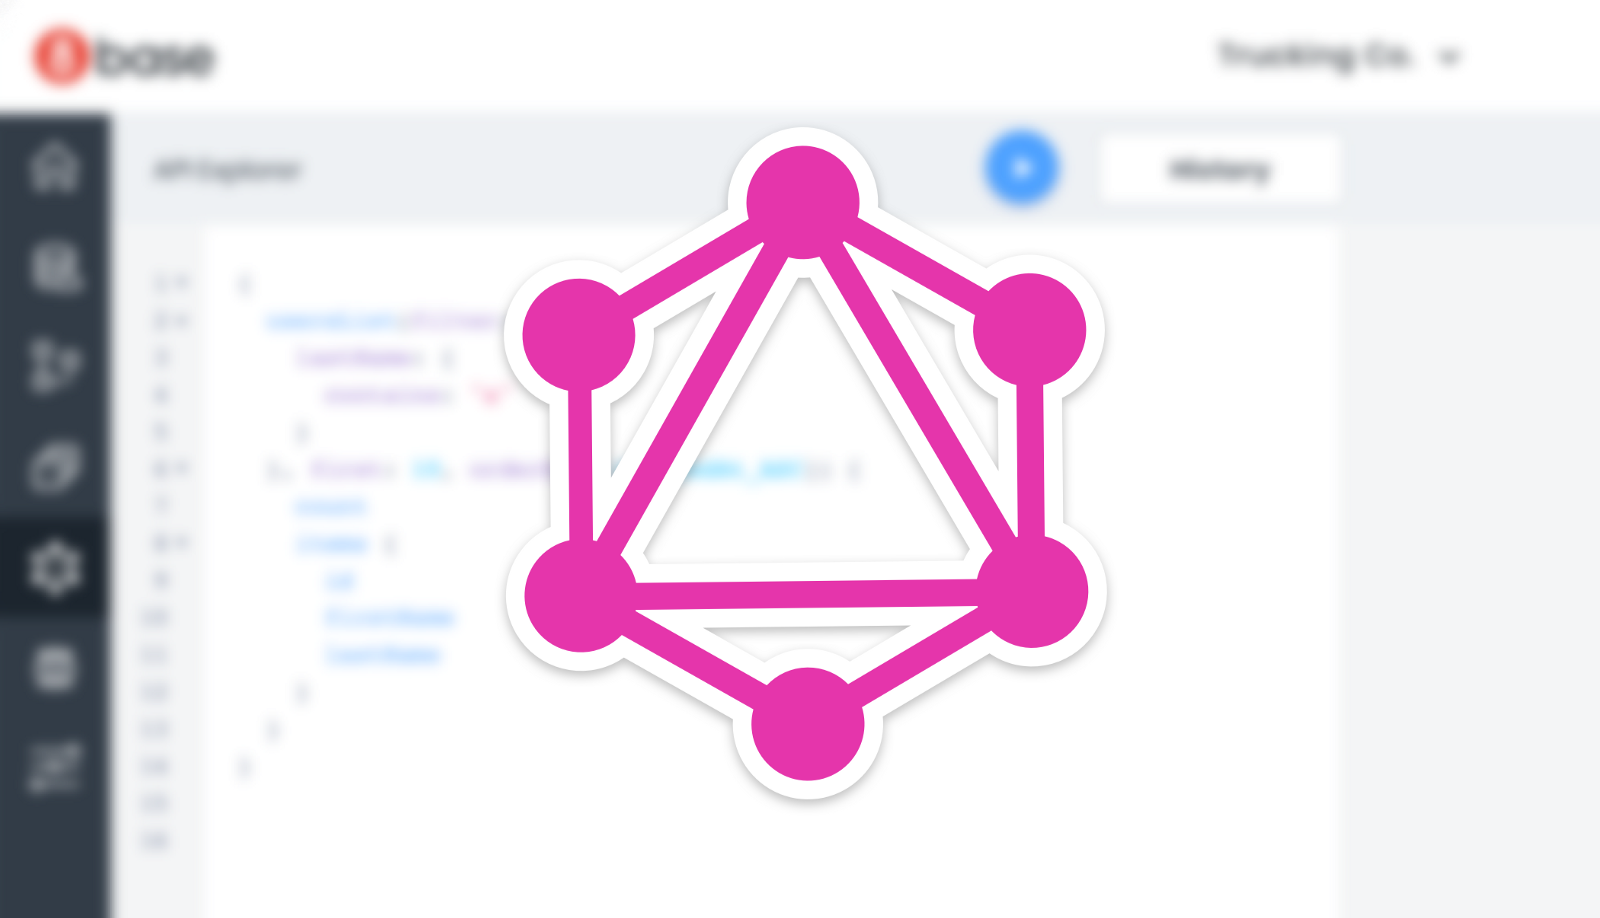 /whether-you-love-or-hate-facebook-graphql-is-awesome-bbf67f33fe10 feature image